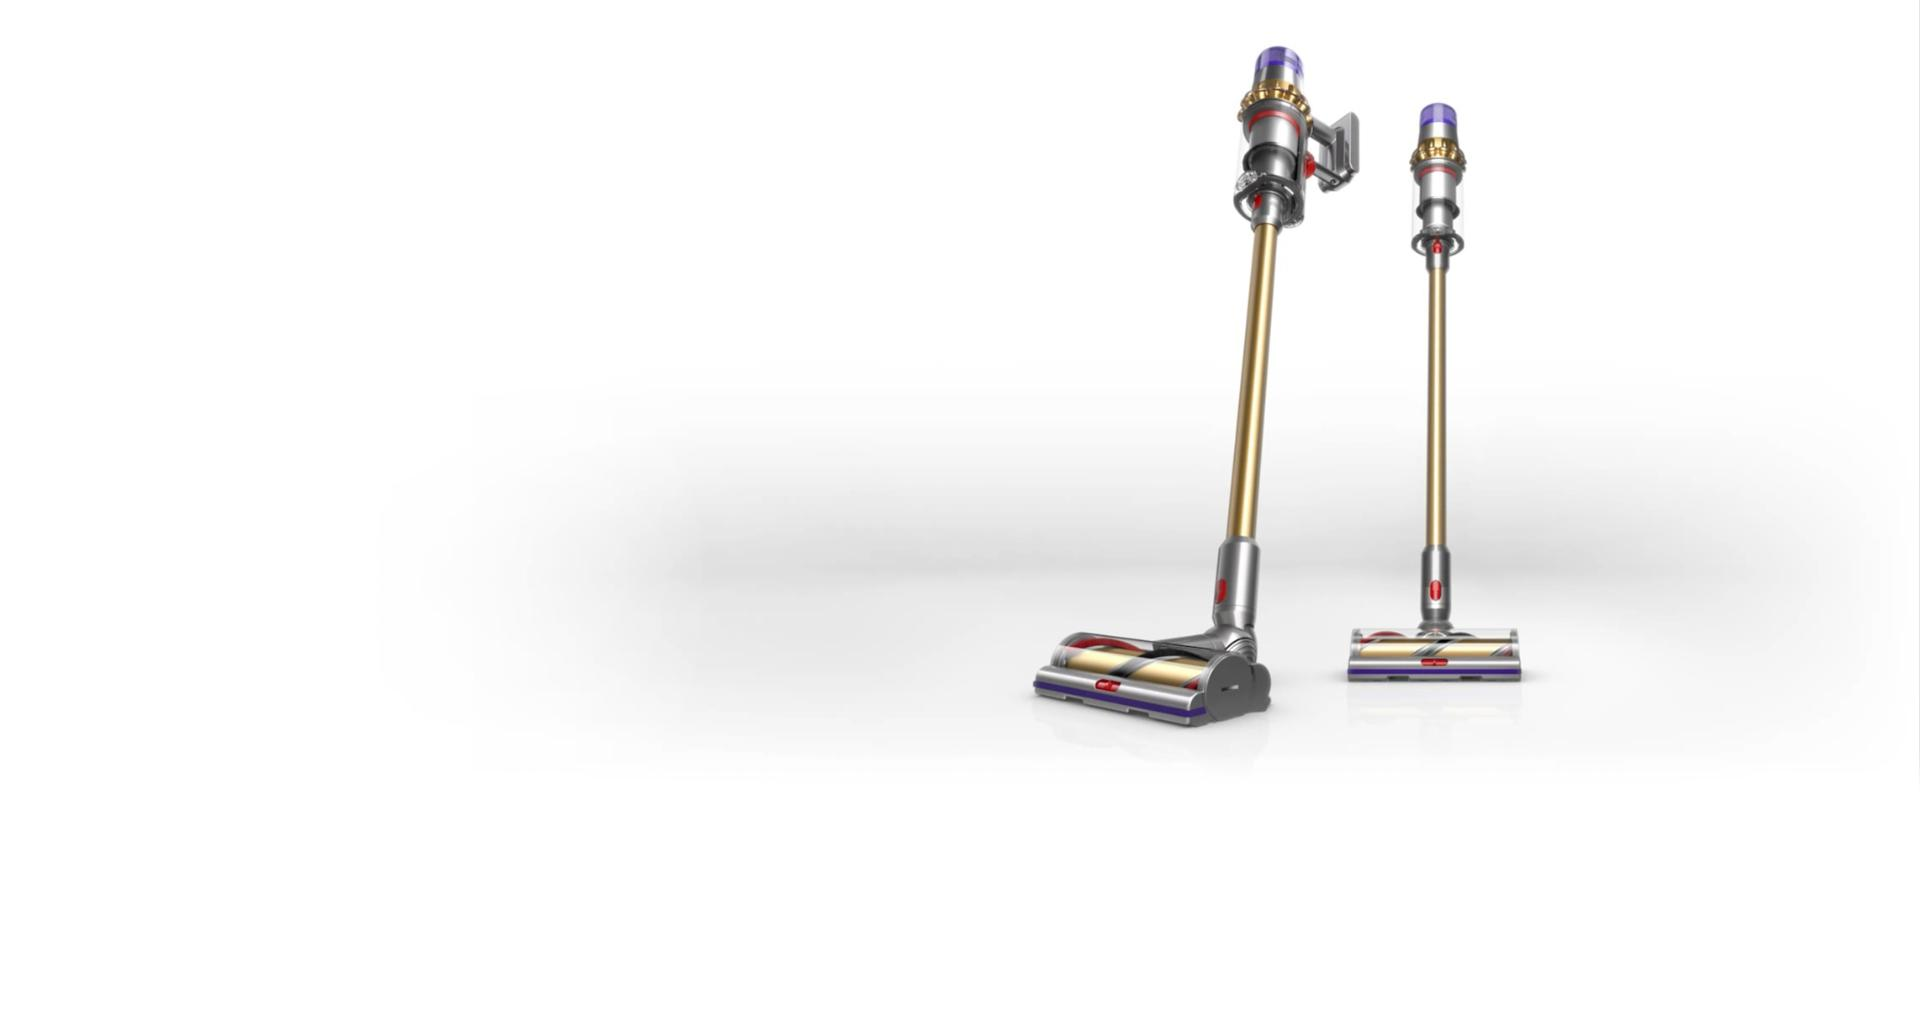 Dyson V11 Absolute vacuum with gold wand